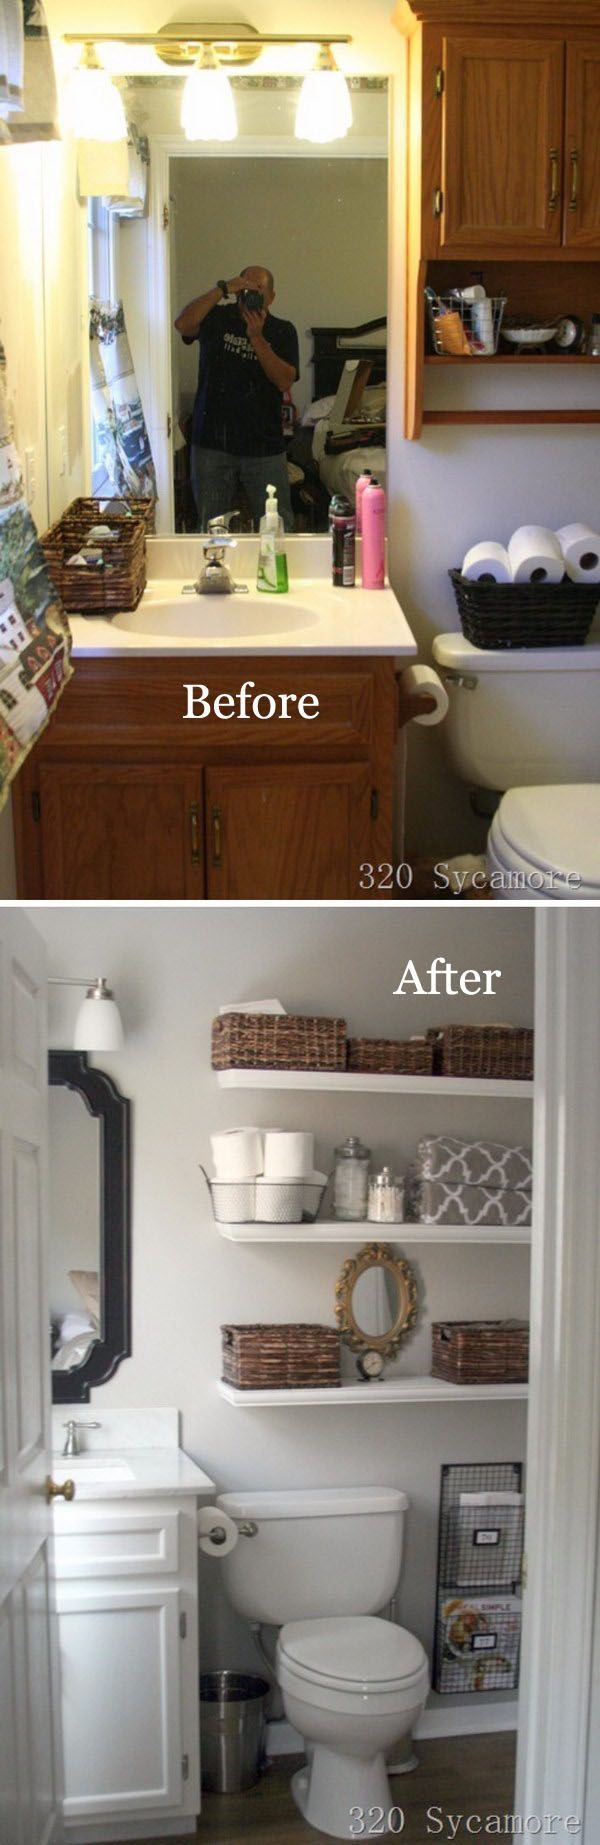 best 25 half bathroom decor ideas on pinterest half bath decor half bath remodel and diy bathroom decor